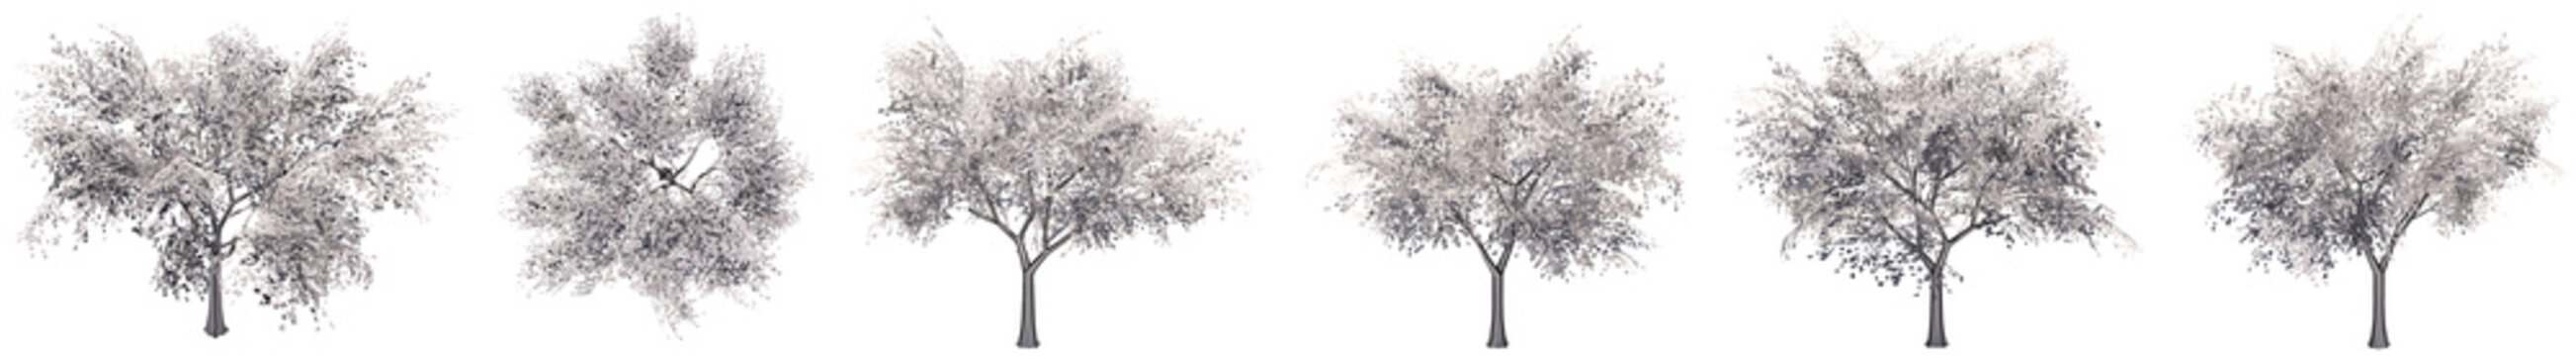 Set or collection of drawings of Tilia trees isolated on white background . Concept or conceptual 3d illustration for nature, ecology and conservation, strength and endurance, force and life